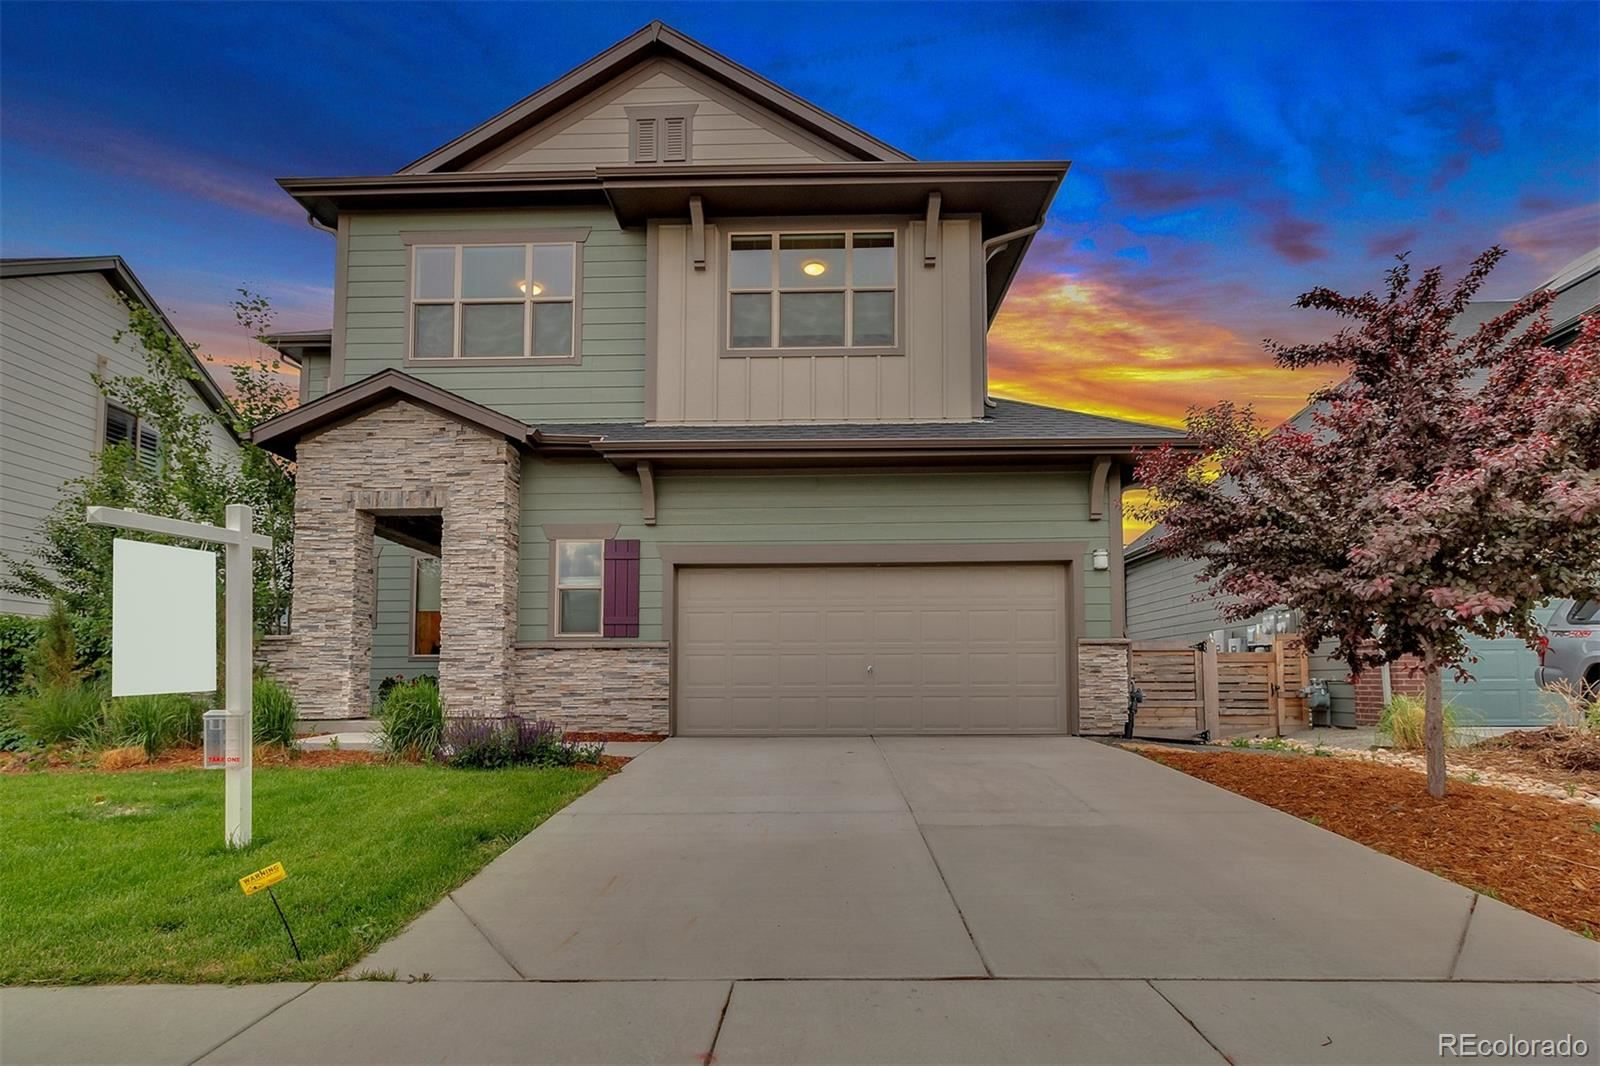 1468 W 66th Avenue, Denver, CO 80221 - #: 4030099